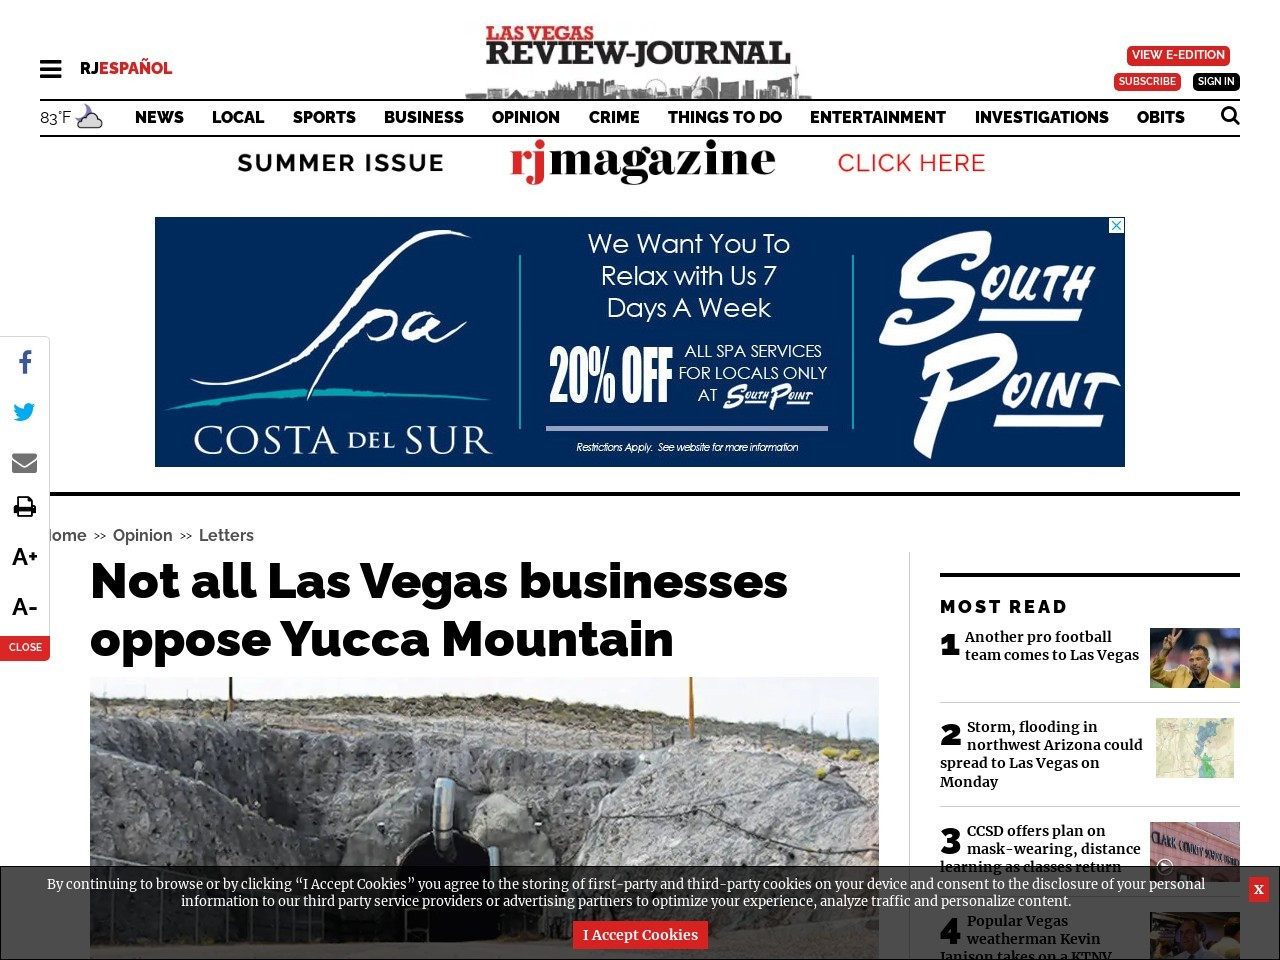 Not all Las Vegas businesses oppose Yucca Mountain